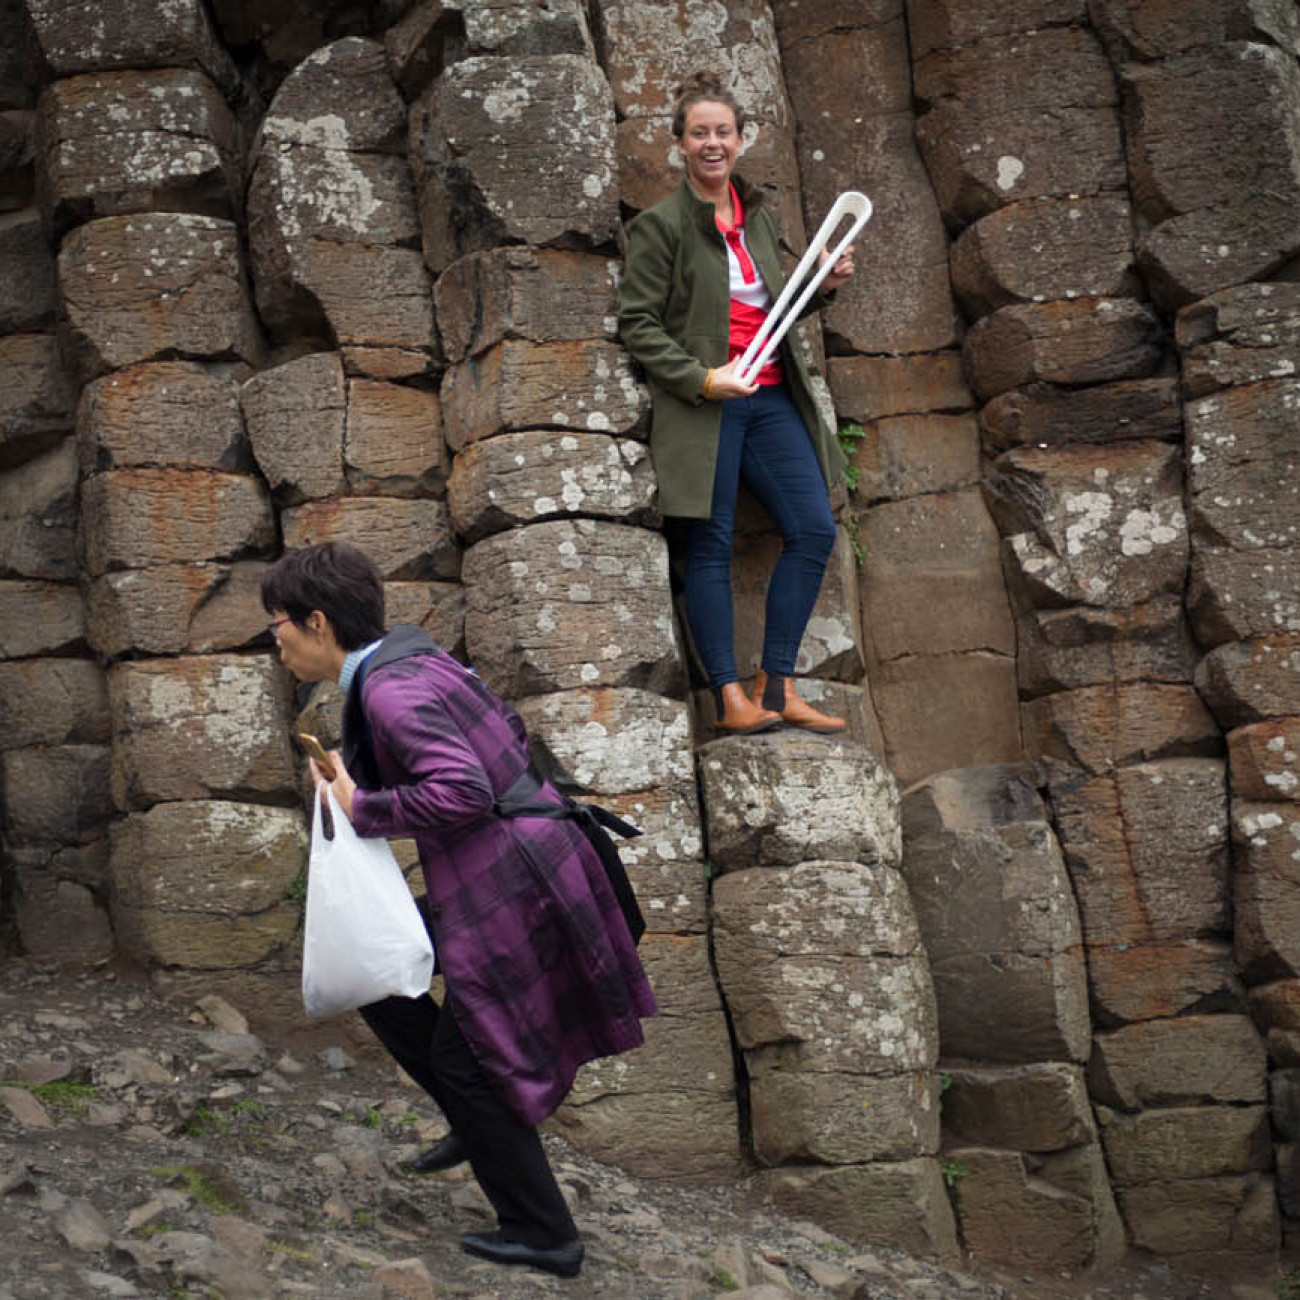 The Queen's Baton, carried by Commonwealth Games Northern Ireland's Beth Healy, photographed at the National Trust's Giant's Causeway, in North Coast, in Northern Ireland, on 29 August 2017.